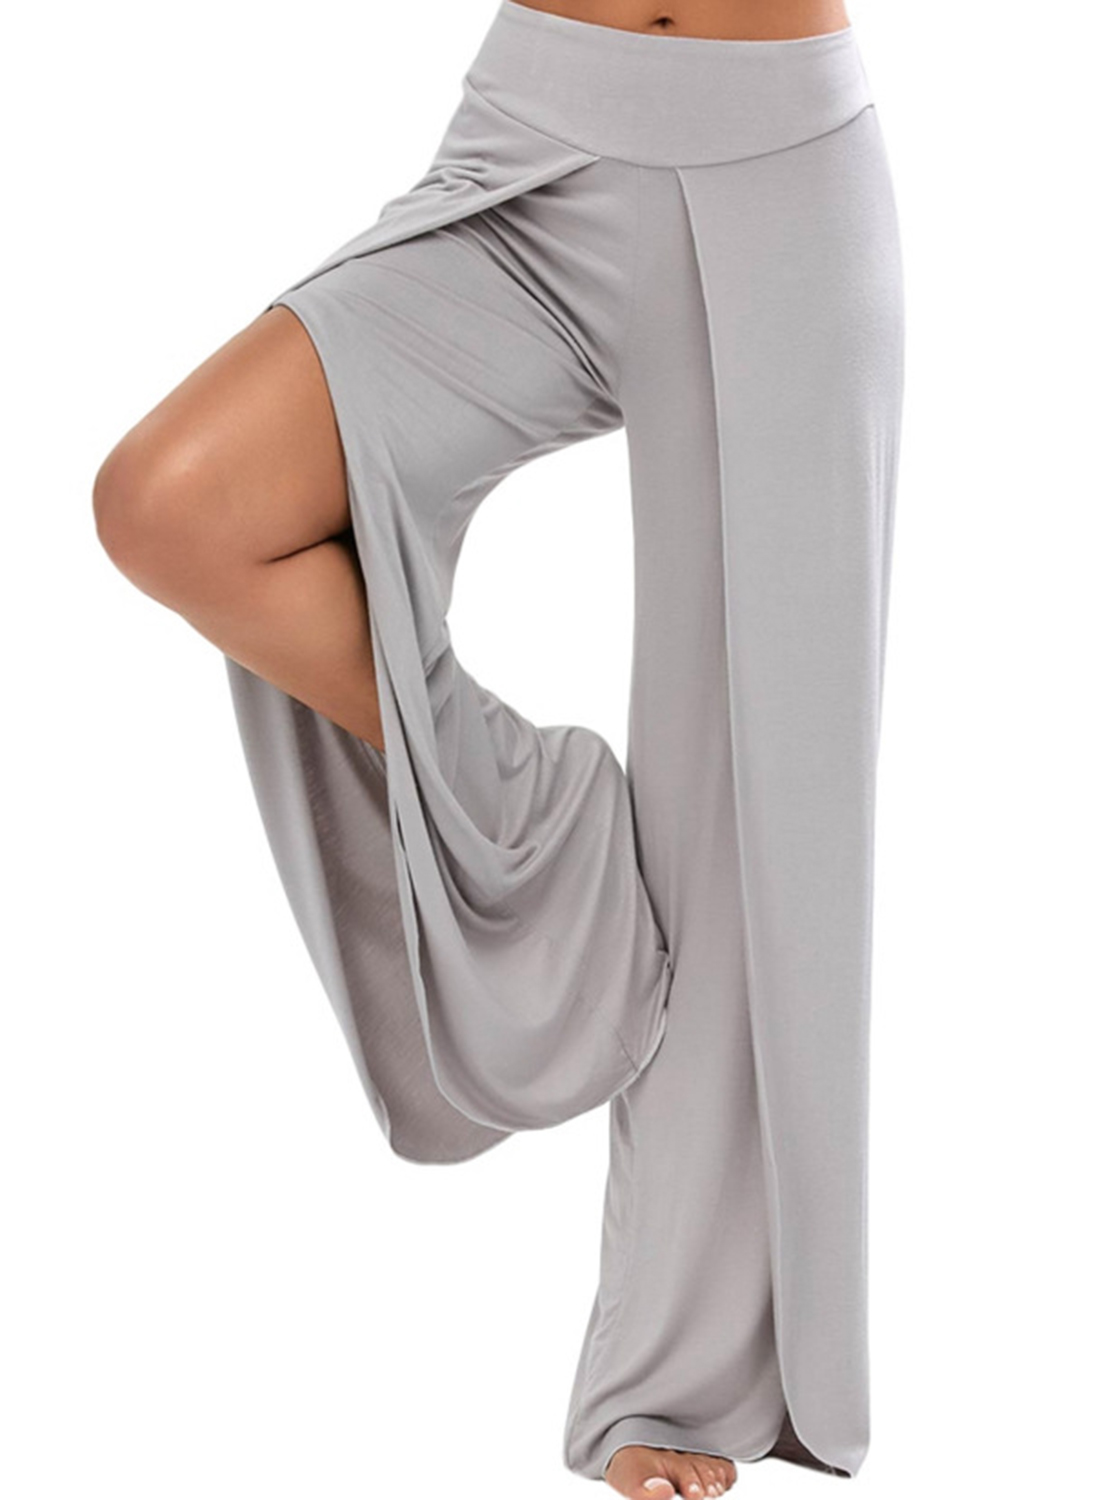 7661ea64f7 Fashion Summer Leisure Loose Slit Wide Leg Pants STYLESIMO.com. Loading zoom